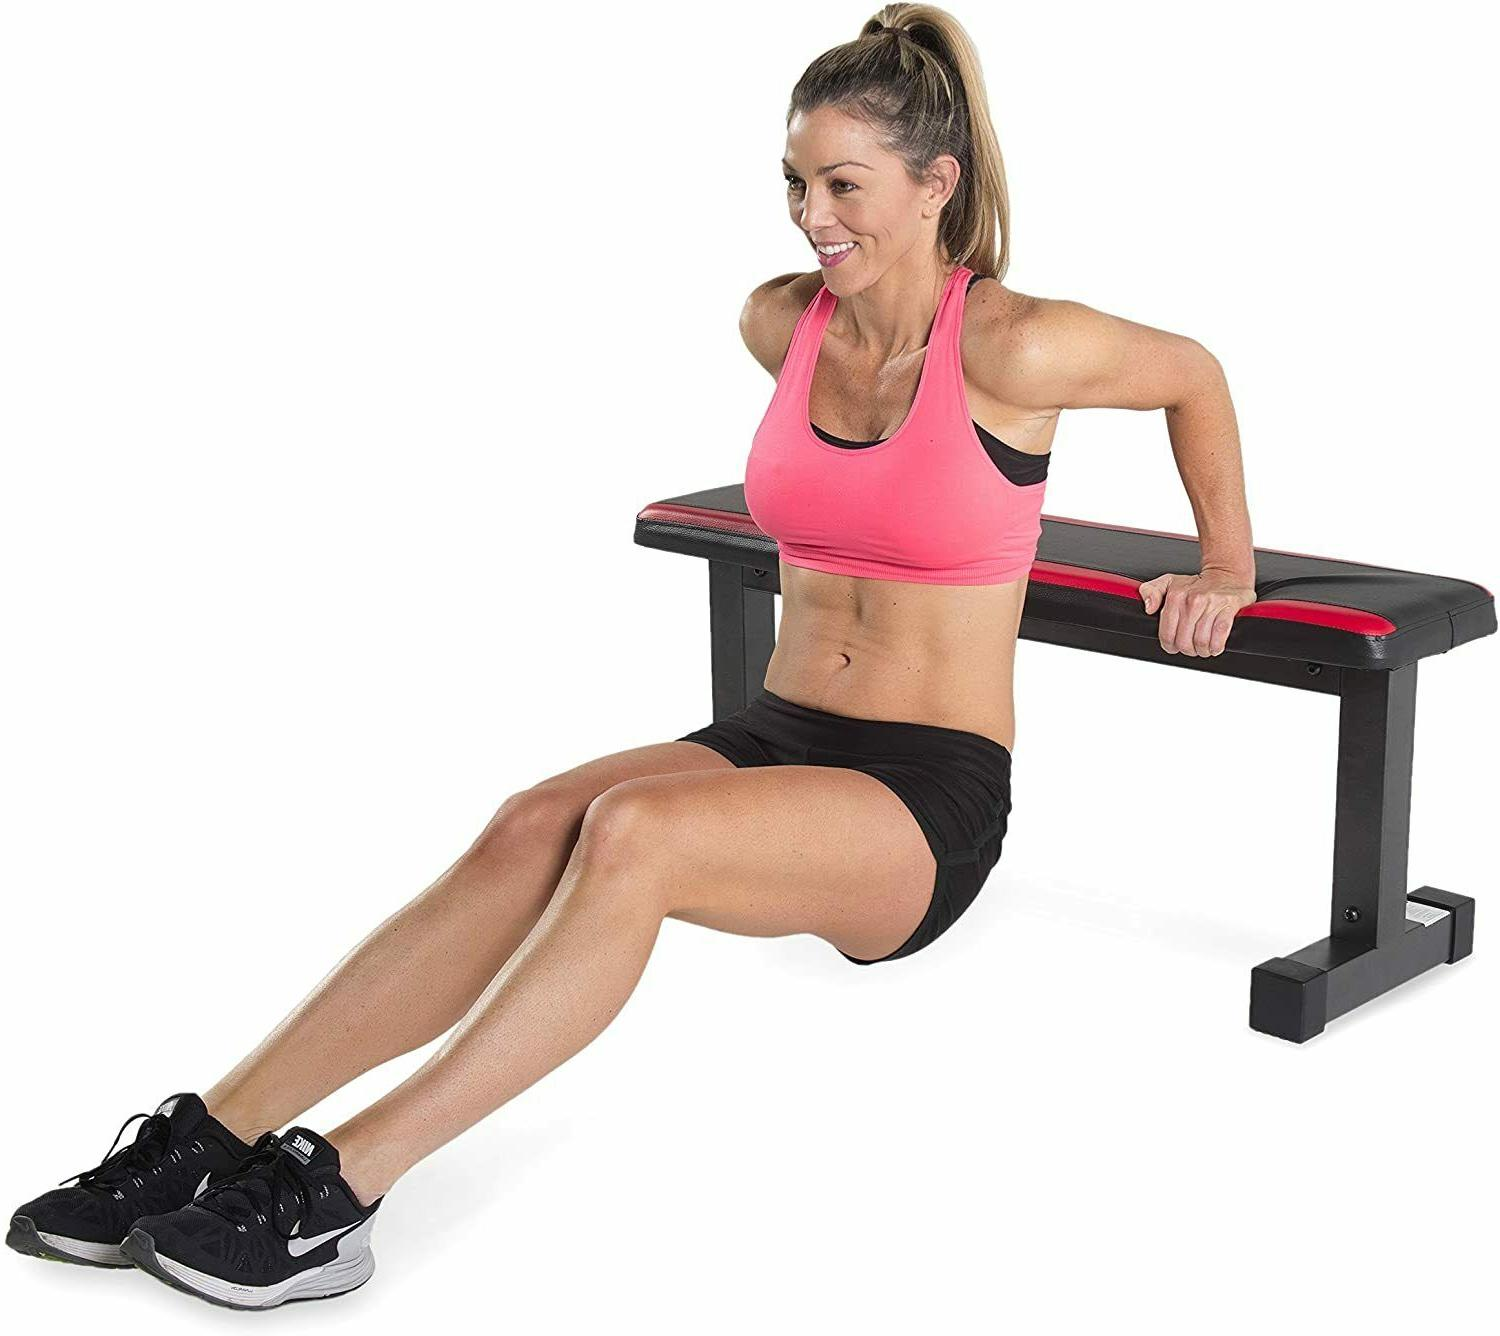 Fitness Bench Workout Exercise Strength